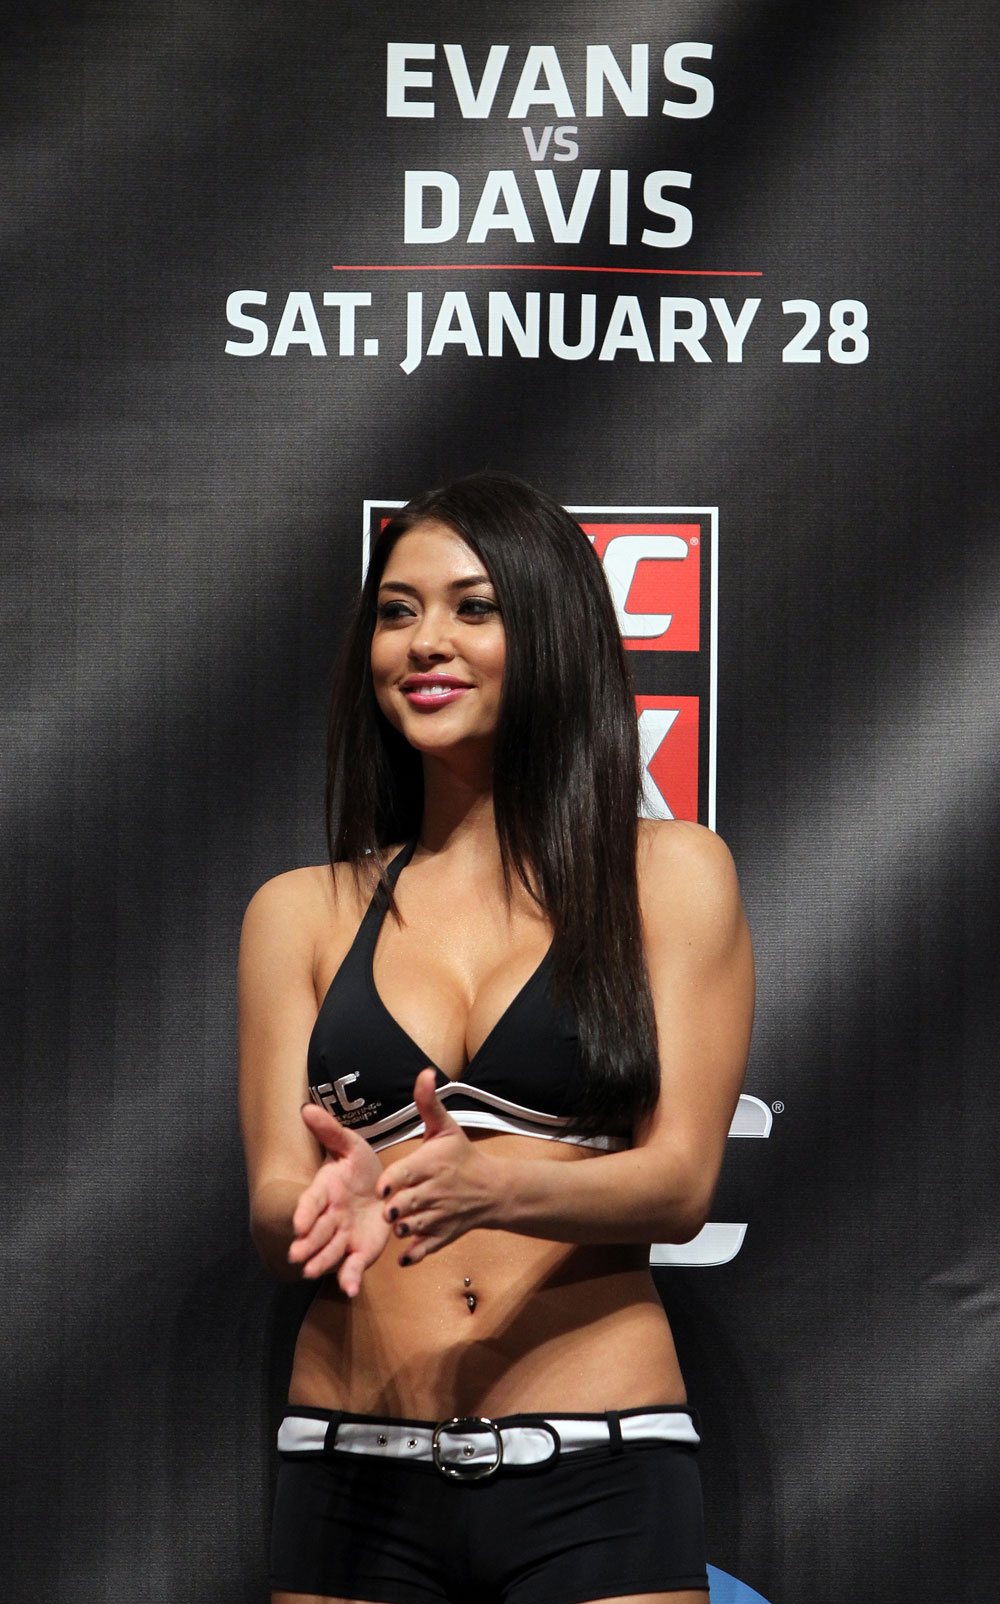 CHICAGO, IL - JANUARY 27:  UFC Octagon Girl Arianny Celeste attends the UFC on FOX official weigh in at the Chicago Theatre on January 27, 2012 in Chicago, Illinois.  (Photo by Josh Hedges/Zuffa LLC/Zuffa LLC via Getty Images) *** Local Caption *** Arianny Celeste